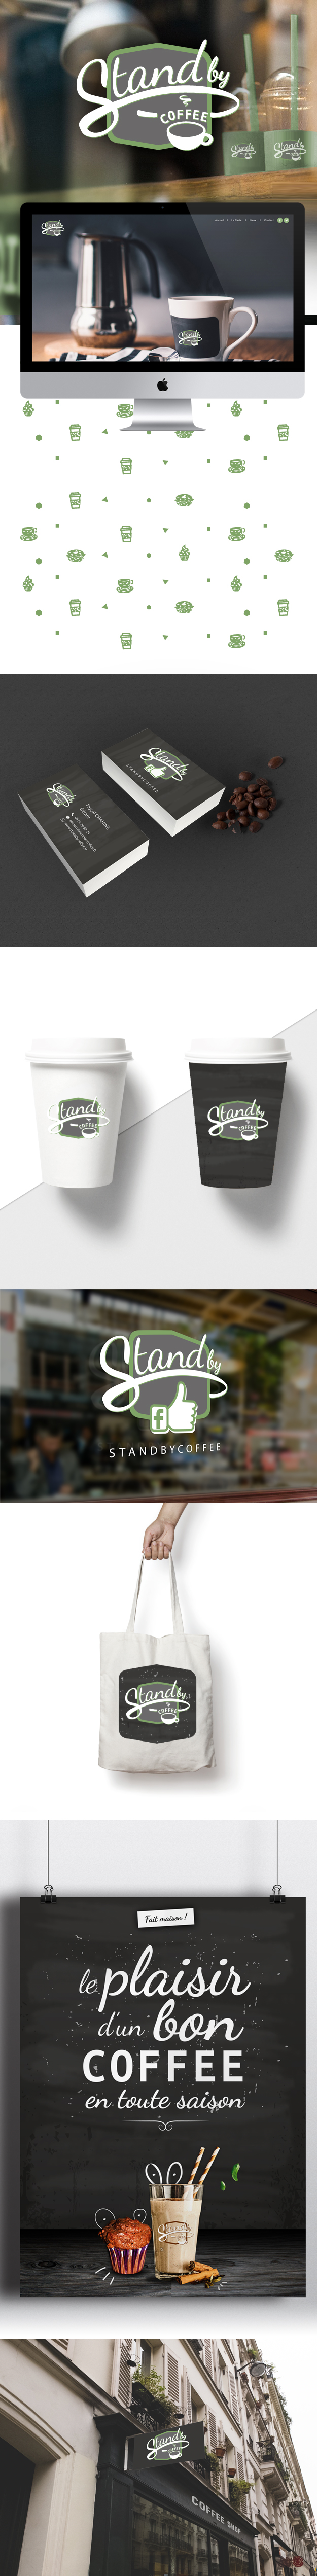 blog_standbycoffee-2